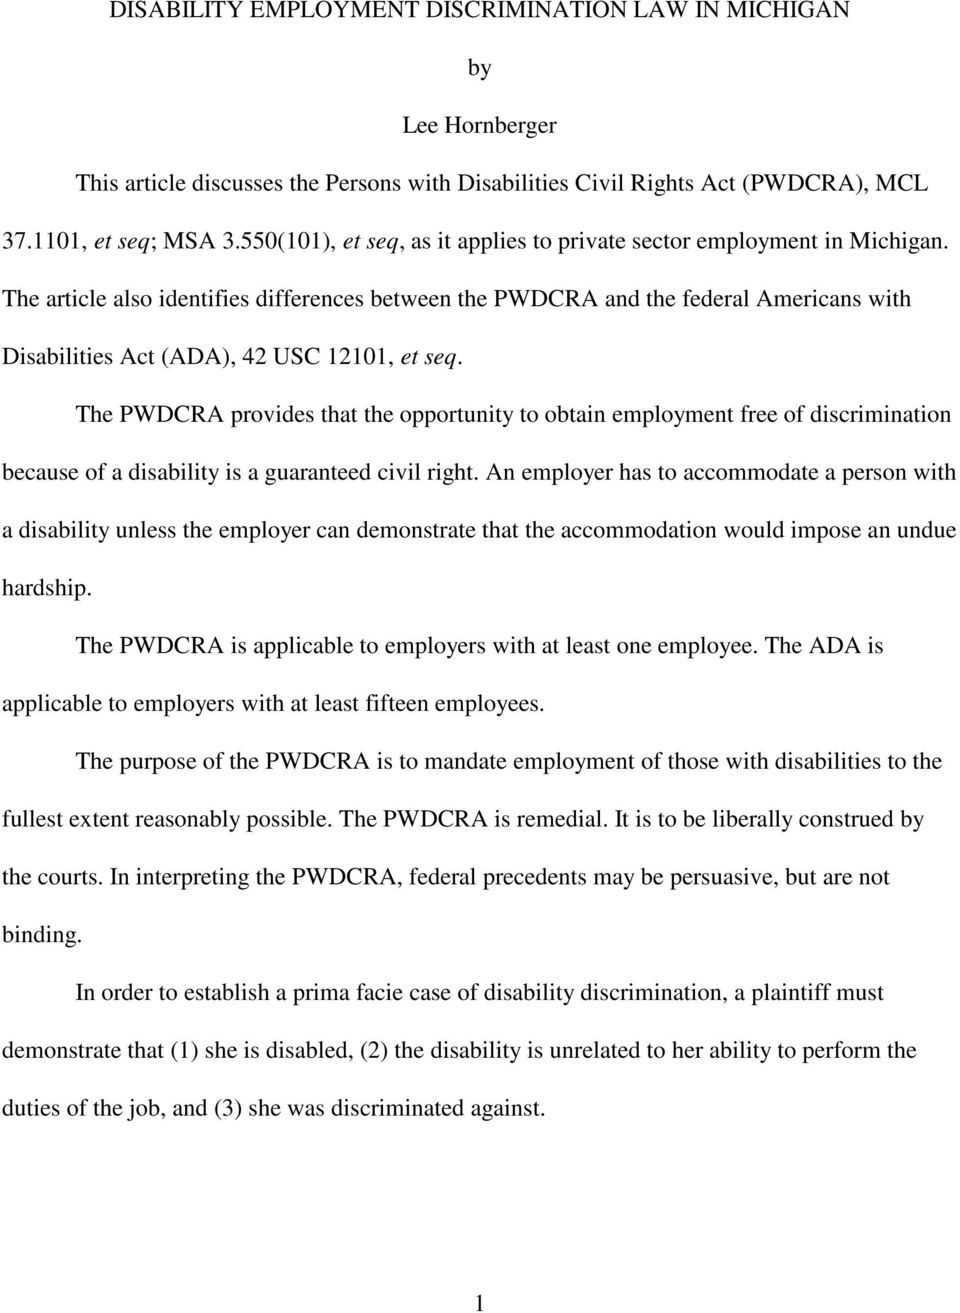 The article also identifies differences between the PWDCRA and the federal Americans with Disabilities Act (ADA), 42 USC 12101, et seq.